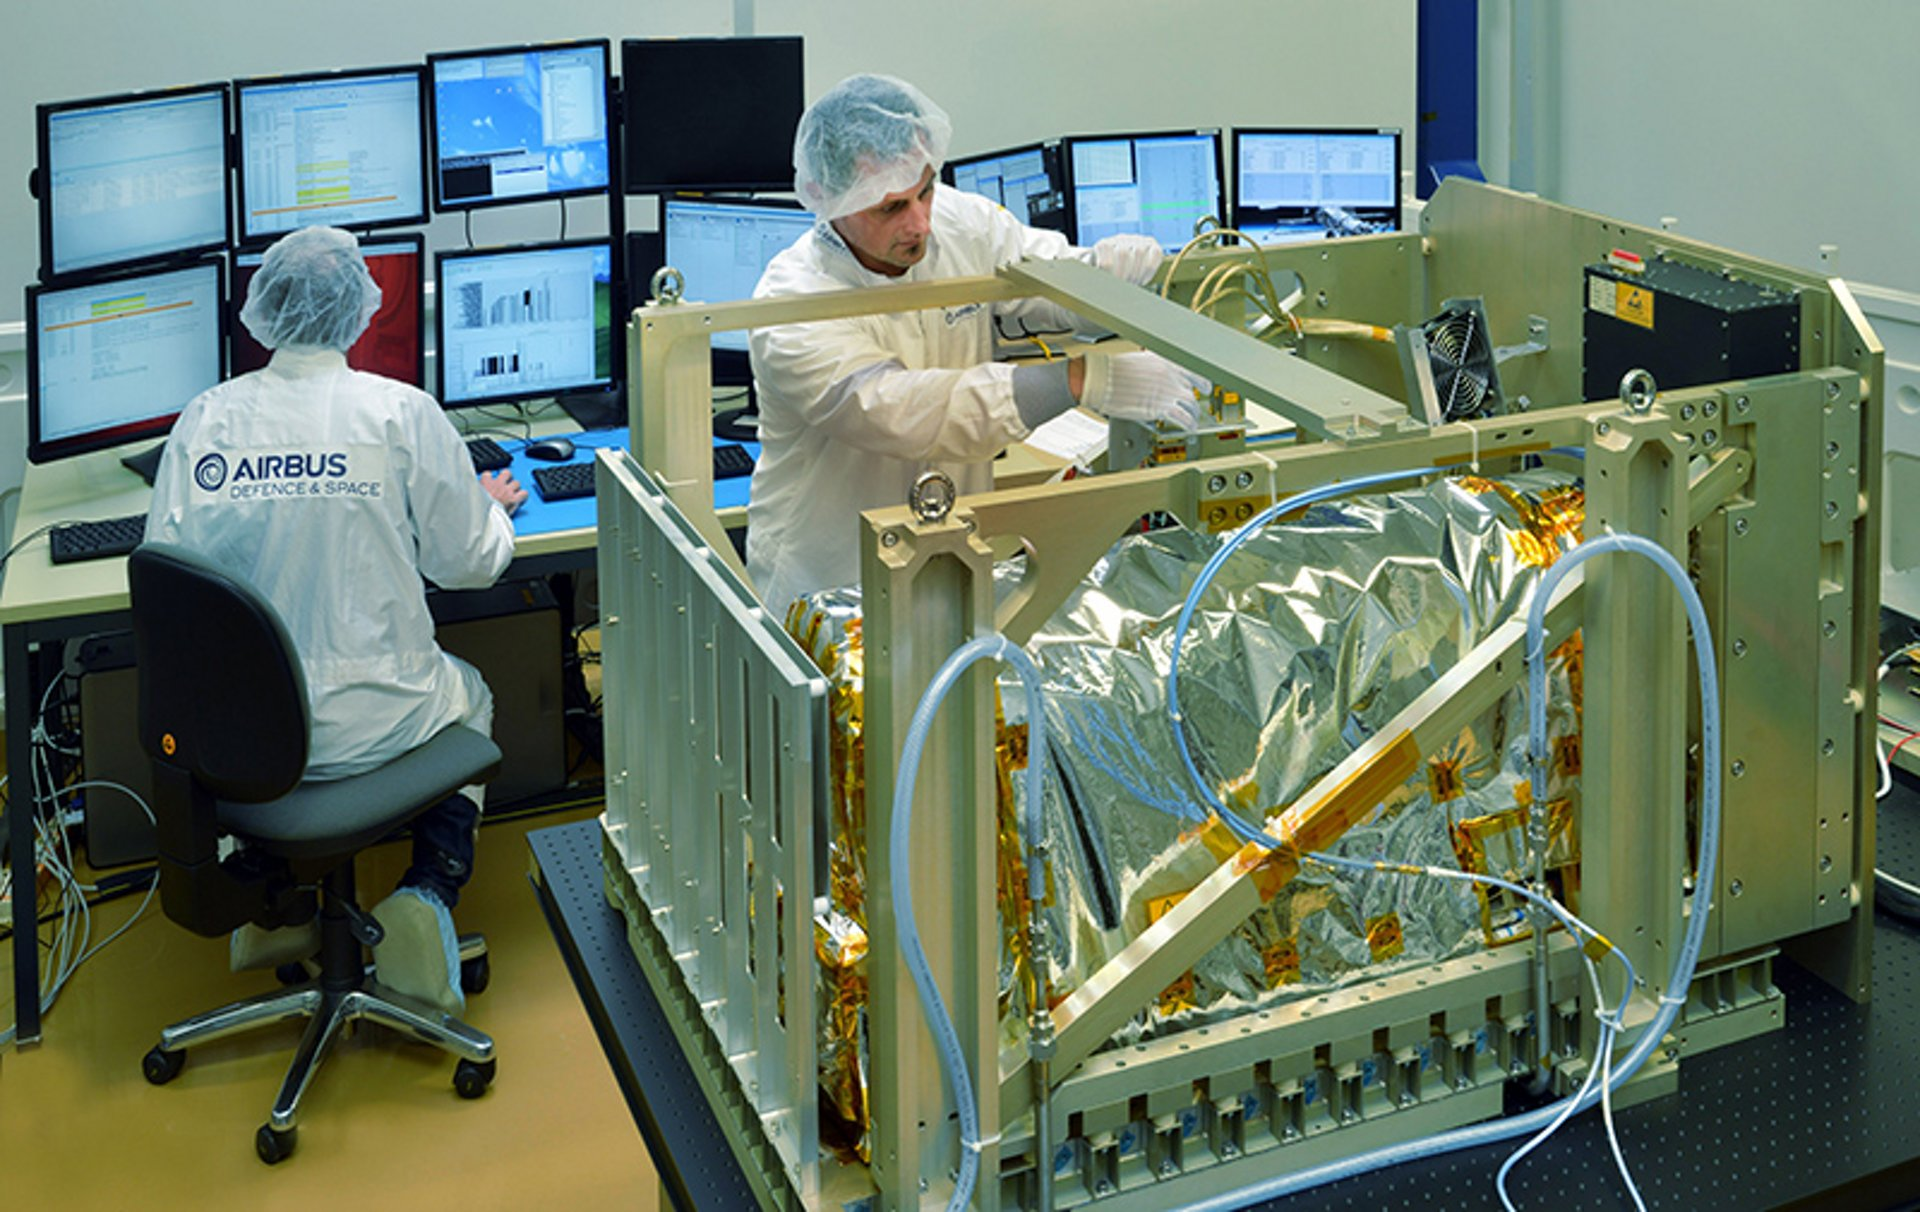 Assembling  of the ACES (Atomic Clock Ensemble in Space) in Airbus facility to test Einstein's general theory of relativity